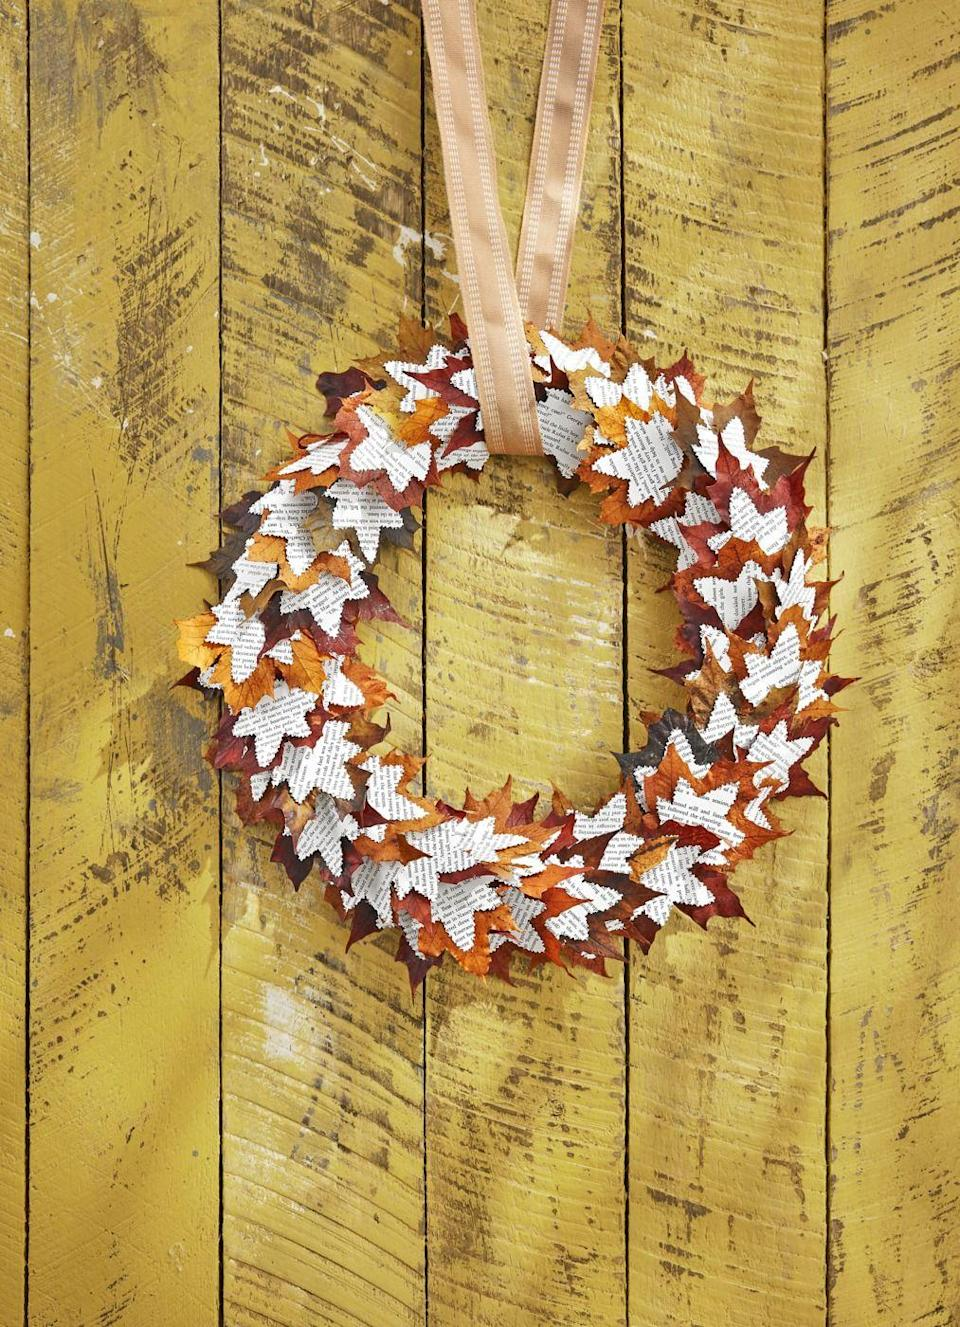 """<p>Greet your Thanksgiving guests with a wreath that celebrates the fall foliage. Although it looks tricky to create, it's actually a lot simpler than you think—and isn't that something to be thankful for?</p><p><strong>To make: </strong>Draw a 3-inch-wide maple leaf shape on a piece of cardboard and cut out to create a stencil. Trace on original pages (or, if preferred, photocopied pages) of a vintage book—consider a fall-themed title or mystery novel—and cut out approximately 100 leaves with decorative scissors that have a """"torn paper"""" edge. Attach book page leaves to maple leaves with hot-glue. Attach layered leaves to a 16-inch wreath form with hot-glue, layering and overlapping them as you go. Hang with burlap ribbon. </p><p><a class=""""link rapid-noclick-resp"""" href=""""https://www.amazon.com/EFCO-Deckle-Creative-Scissor-Blue/dp/B000WKONFQ/ref=sr_1_4?tag=syn-yahoo-20&ascsubtag=%5Bartid%7C10050.g.2063%5Bsrc%7Cyahoo-us"""" rel=""""nofollow noopener"""" target=""""_blank"""" data-ylk=""""slk:SHOP SCISSORS"""">SHOP SCISSORS</a></p>"""